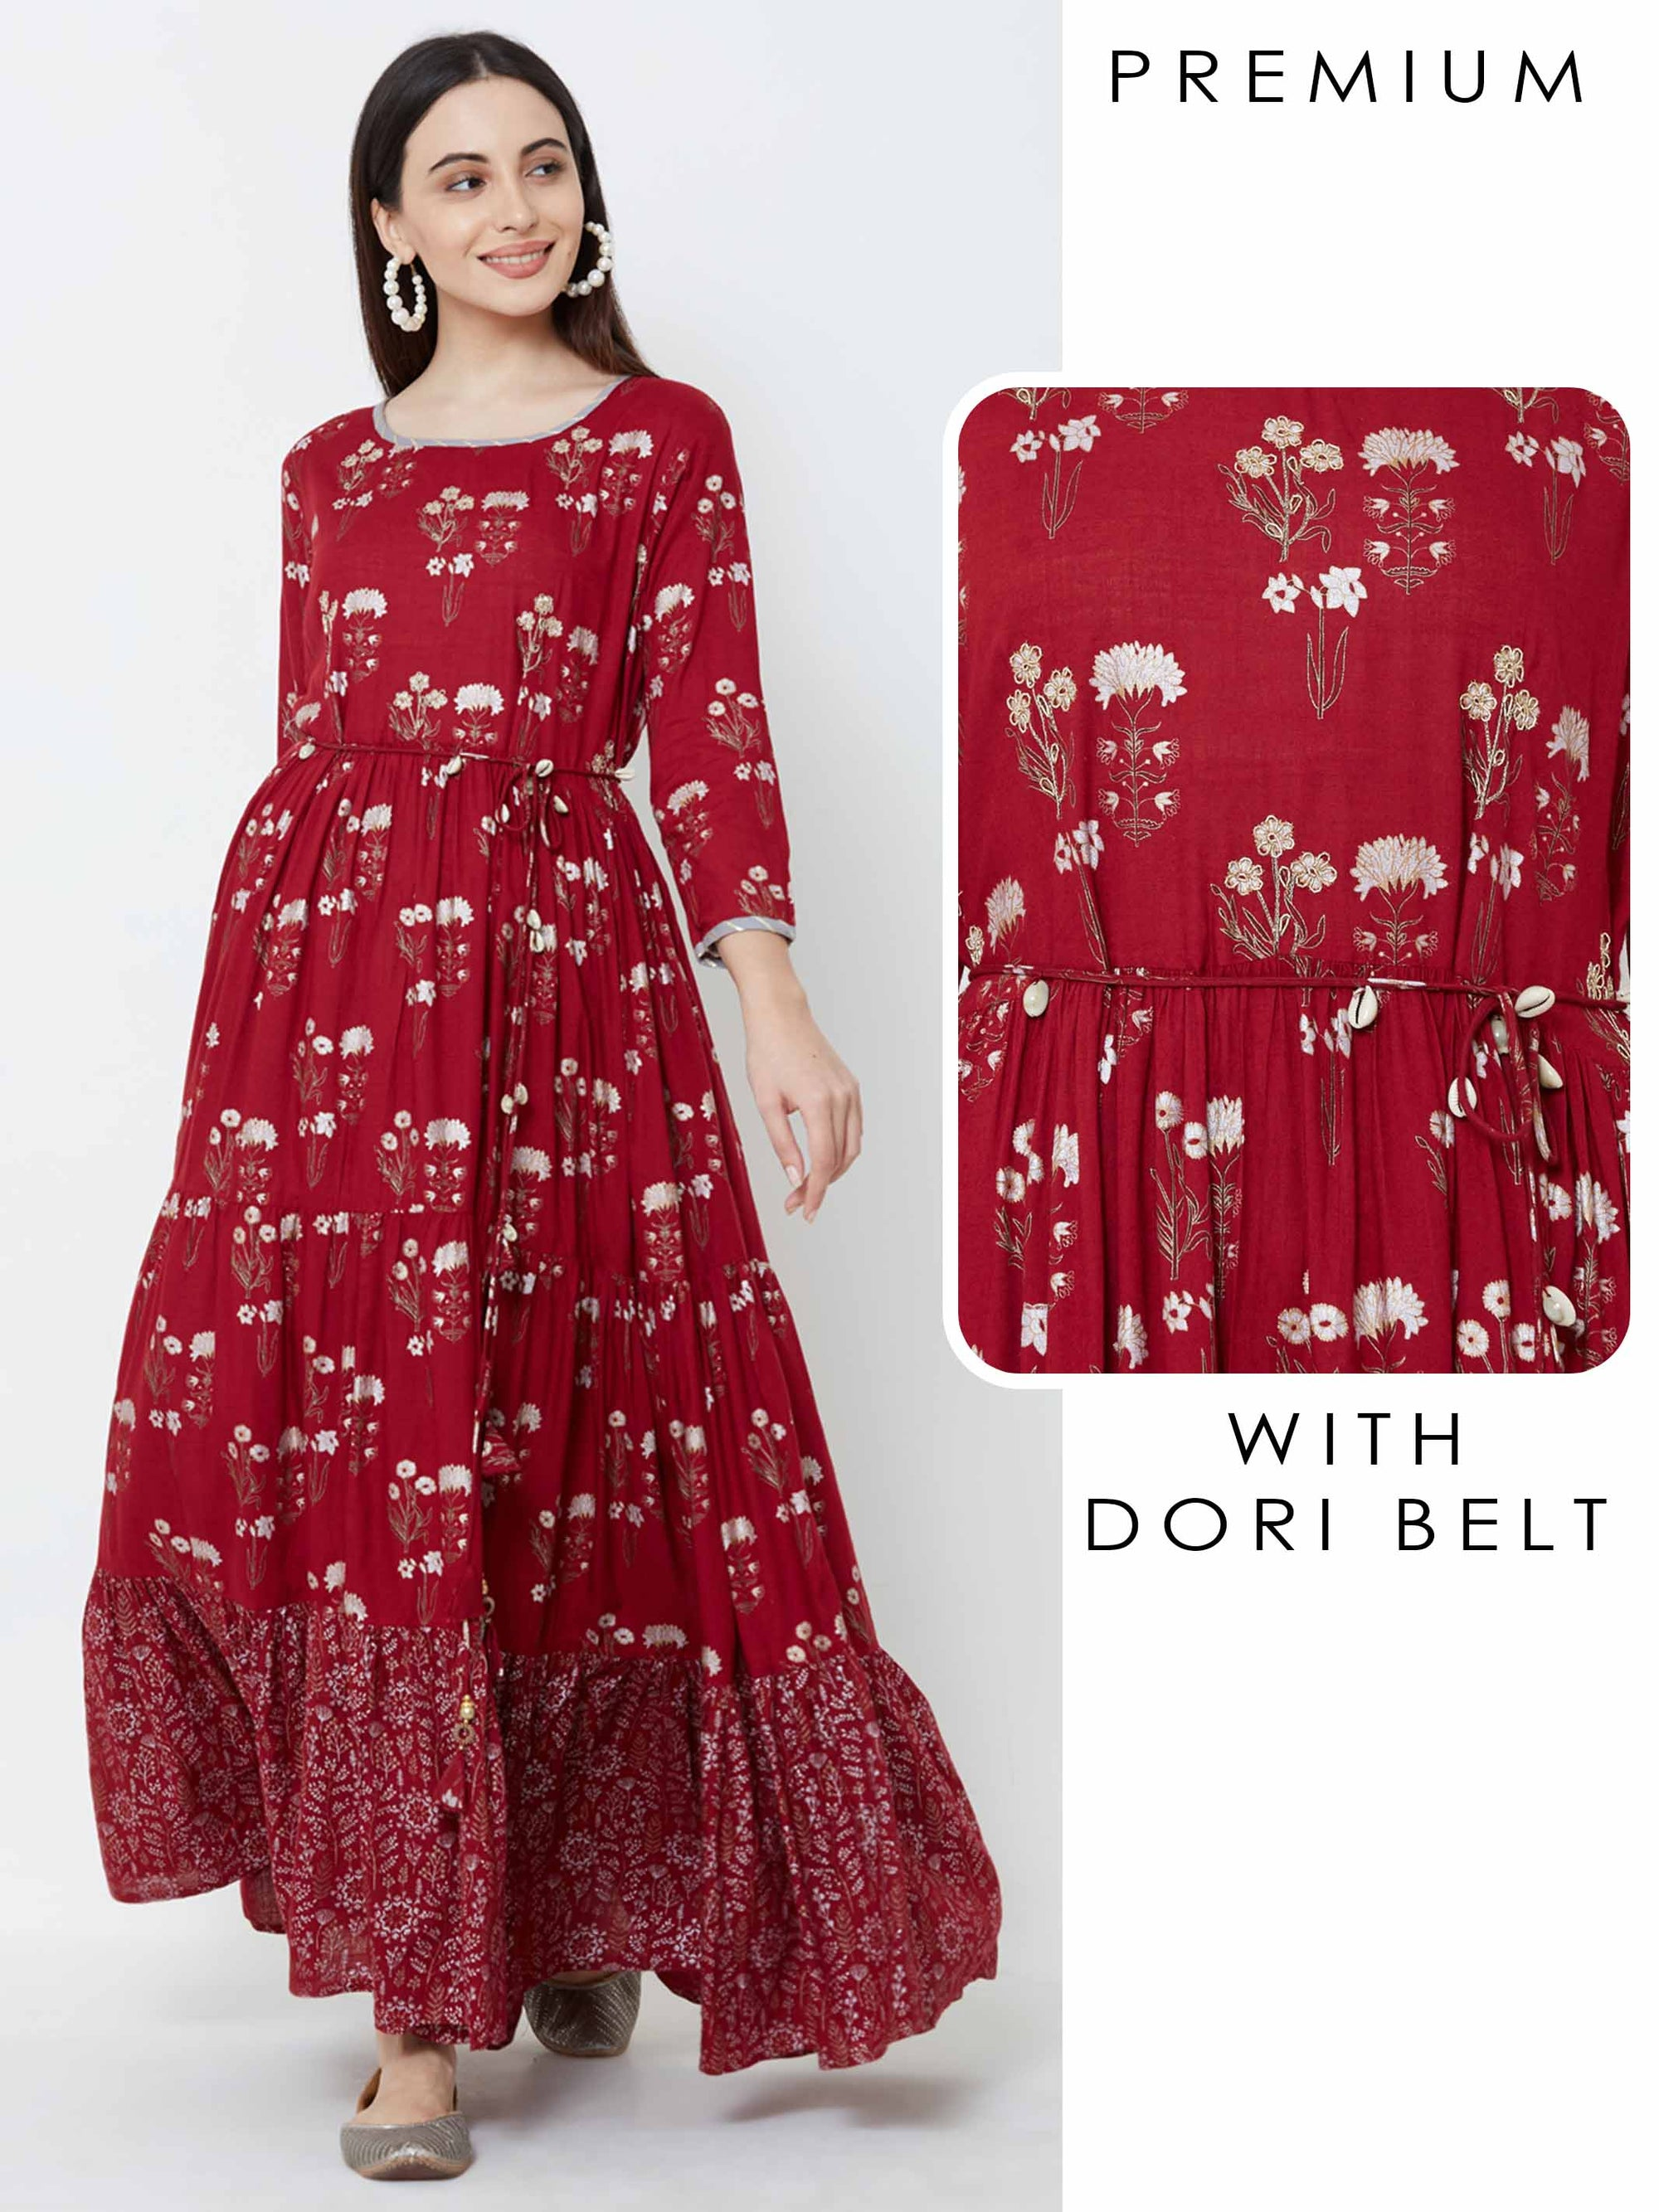 Zari Cord Embroidered Floral Maxi with Dori Belt – Maroon